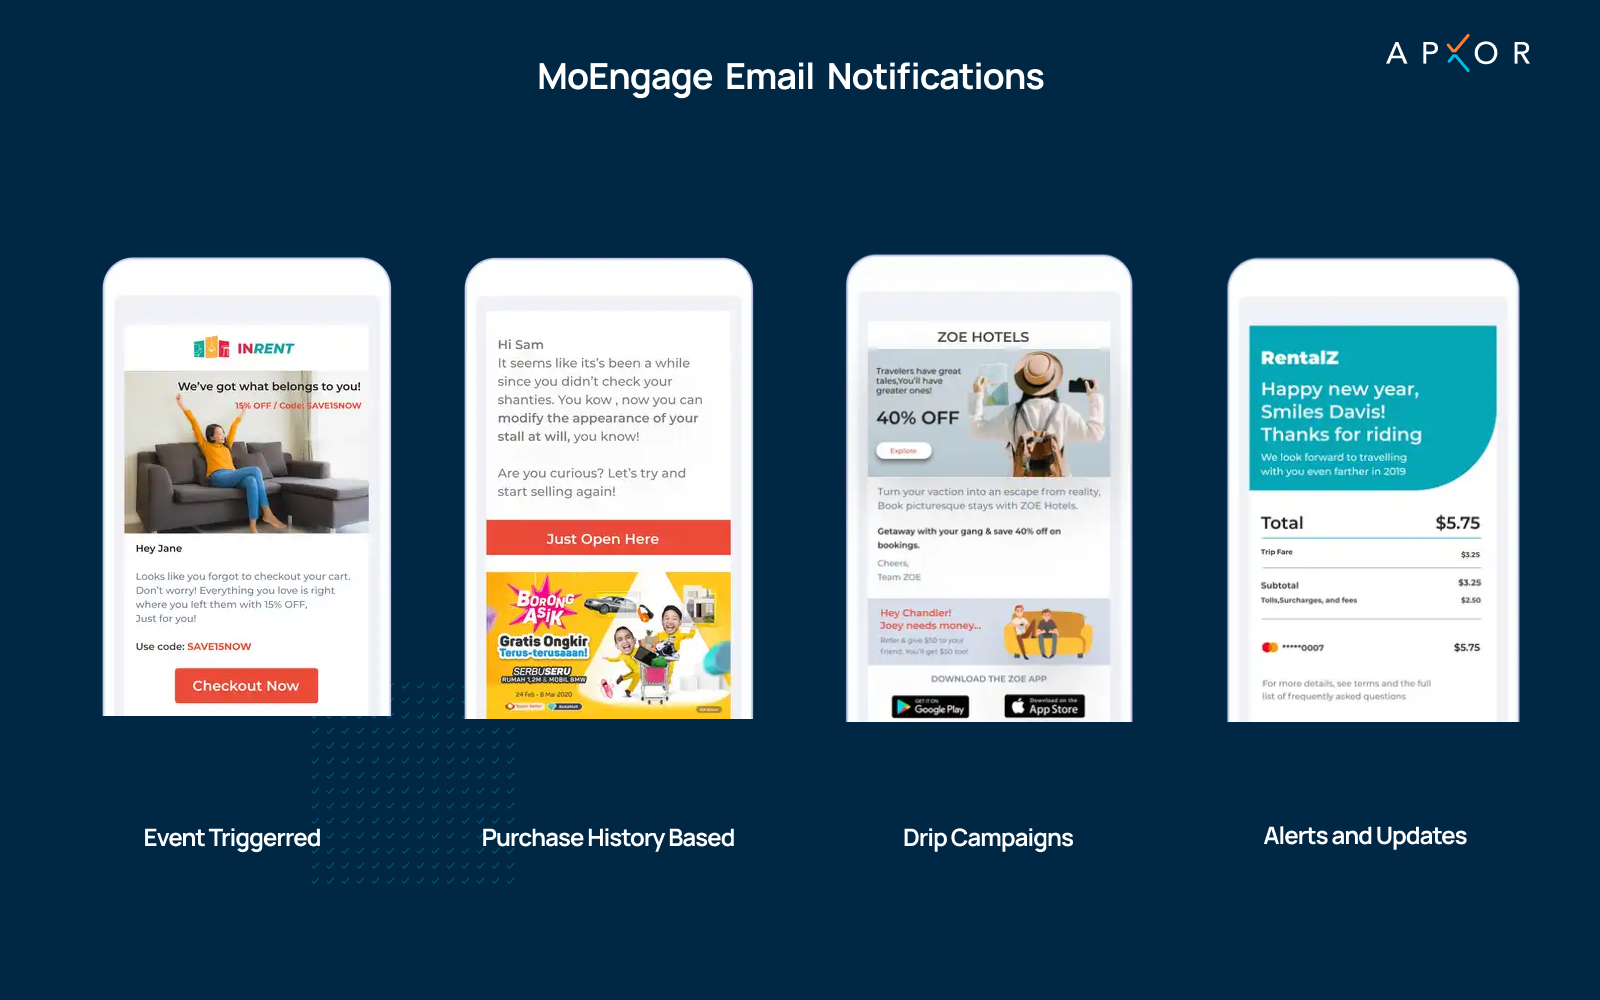 MoEngage's Email Notifications - Apxor